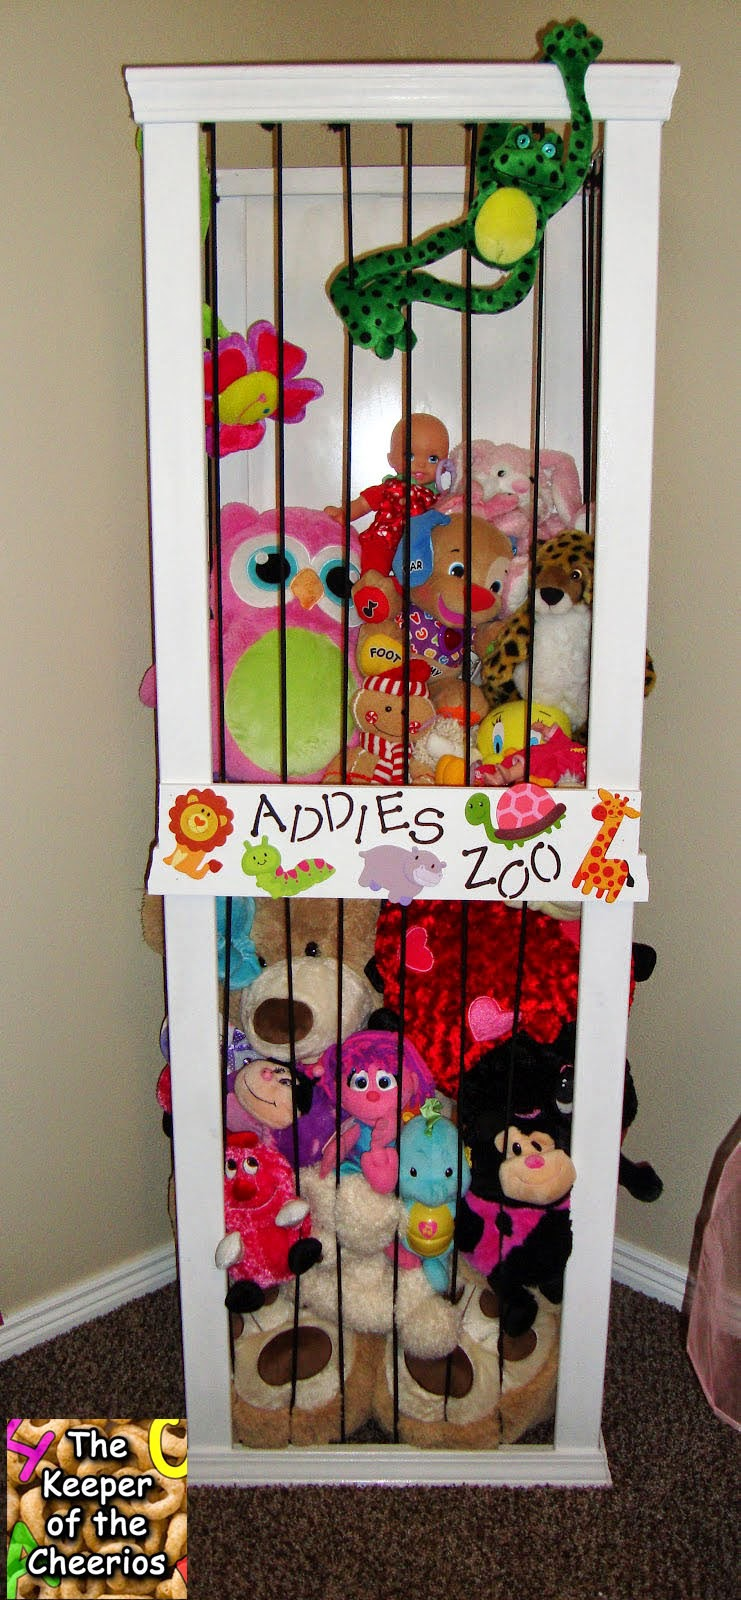 Addies Zoo The Keeper Of Cheerios On Go Pink Cheerio Basic Building Instructions For Main Support My Husband Used 4 1x2 Boards Appx 6 High We Found It Was Surprisingly Cheaper To Buy Ones That